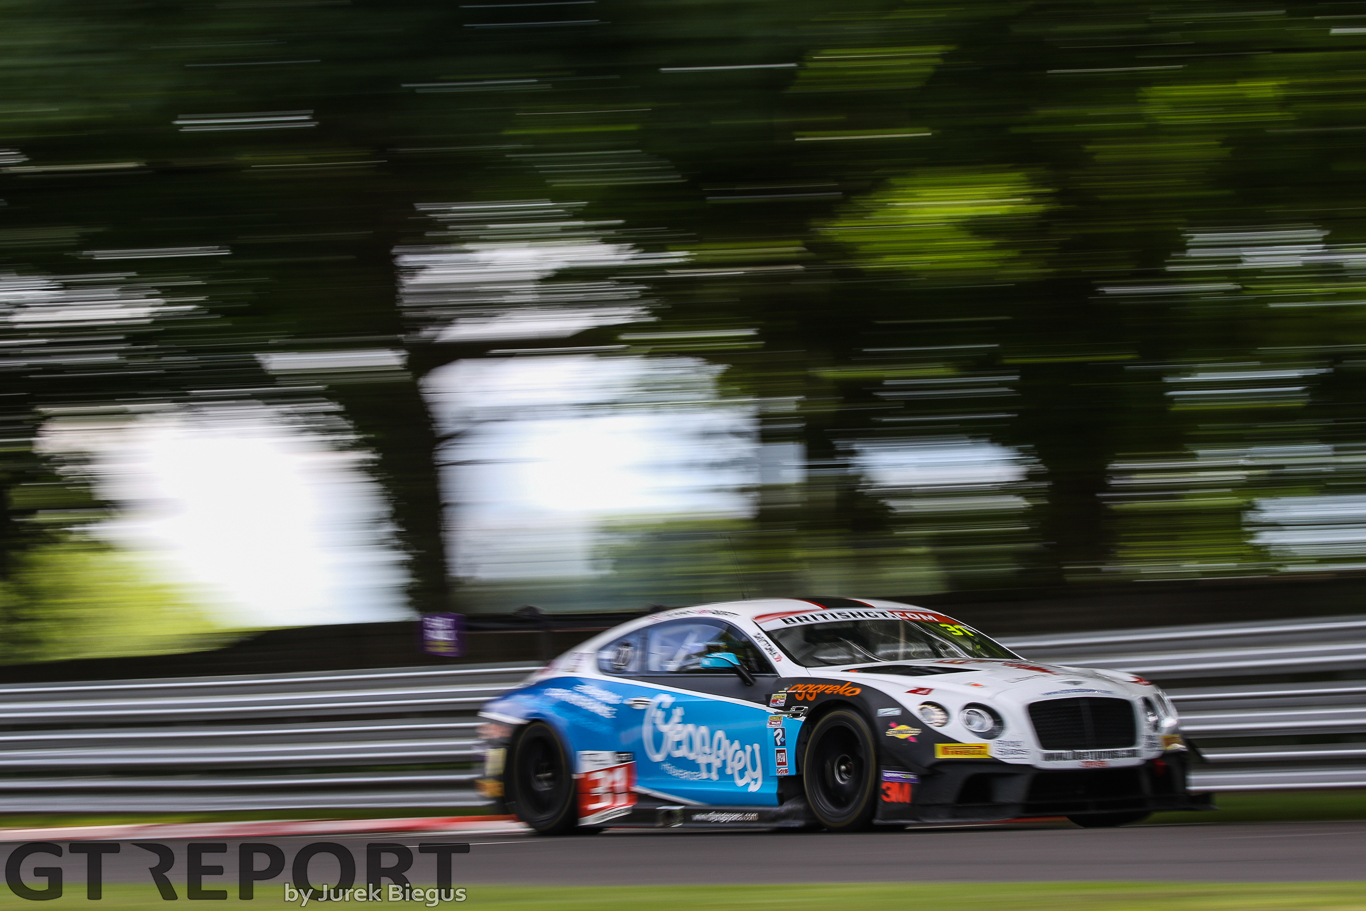 British GT Oulton Park race report: On home turf